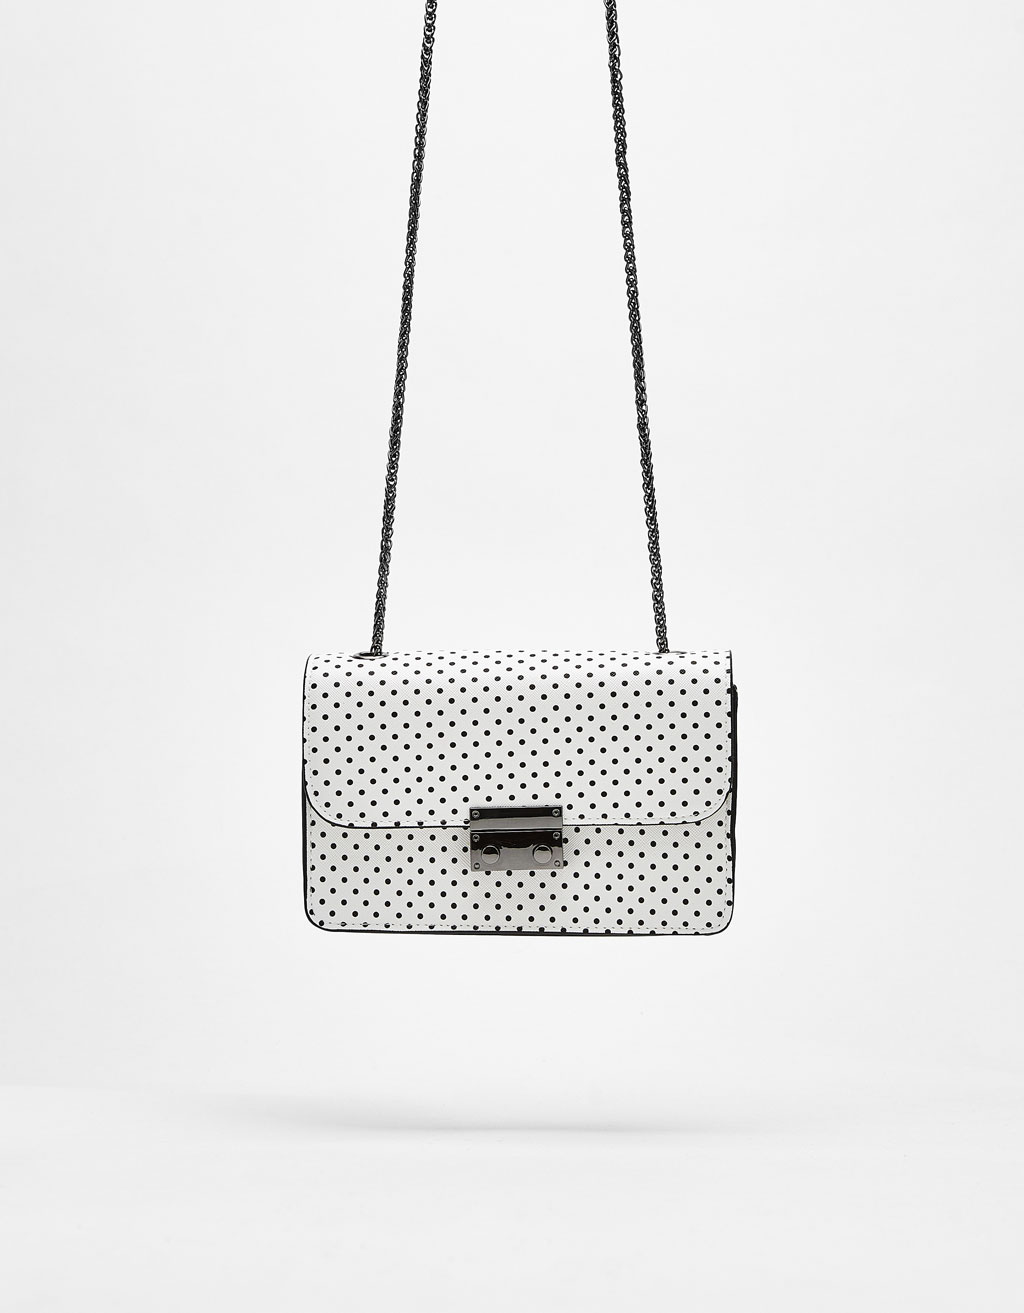 Printed mini handbag with clasp